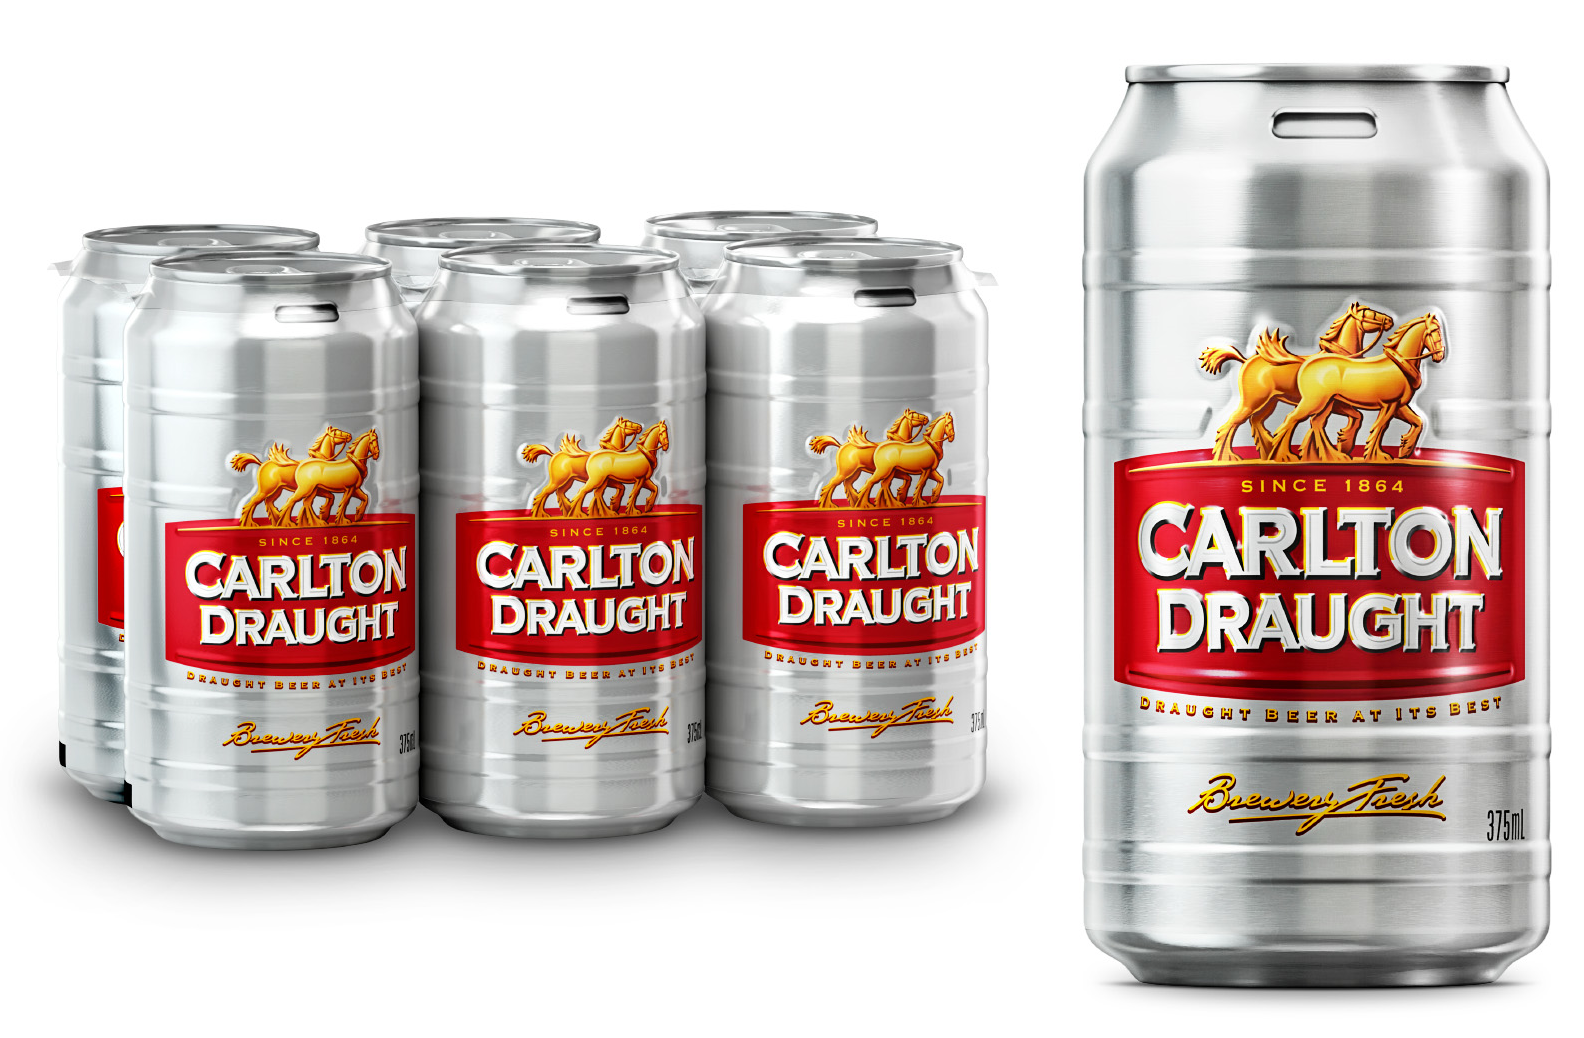 Photo: Carlton Draught new cans